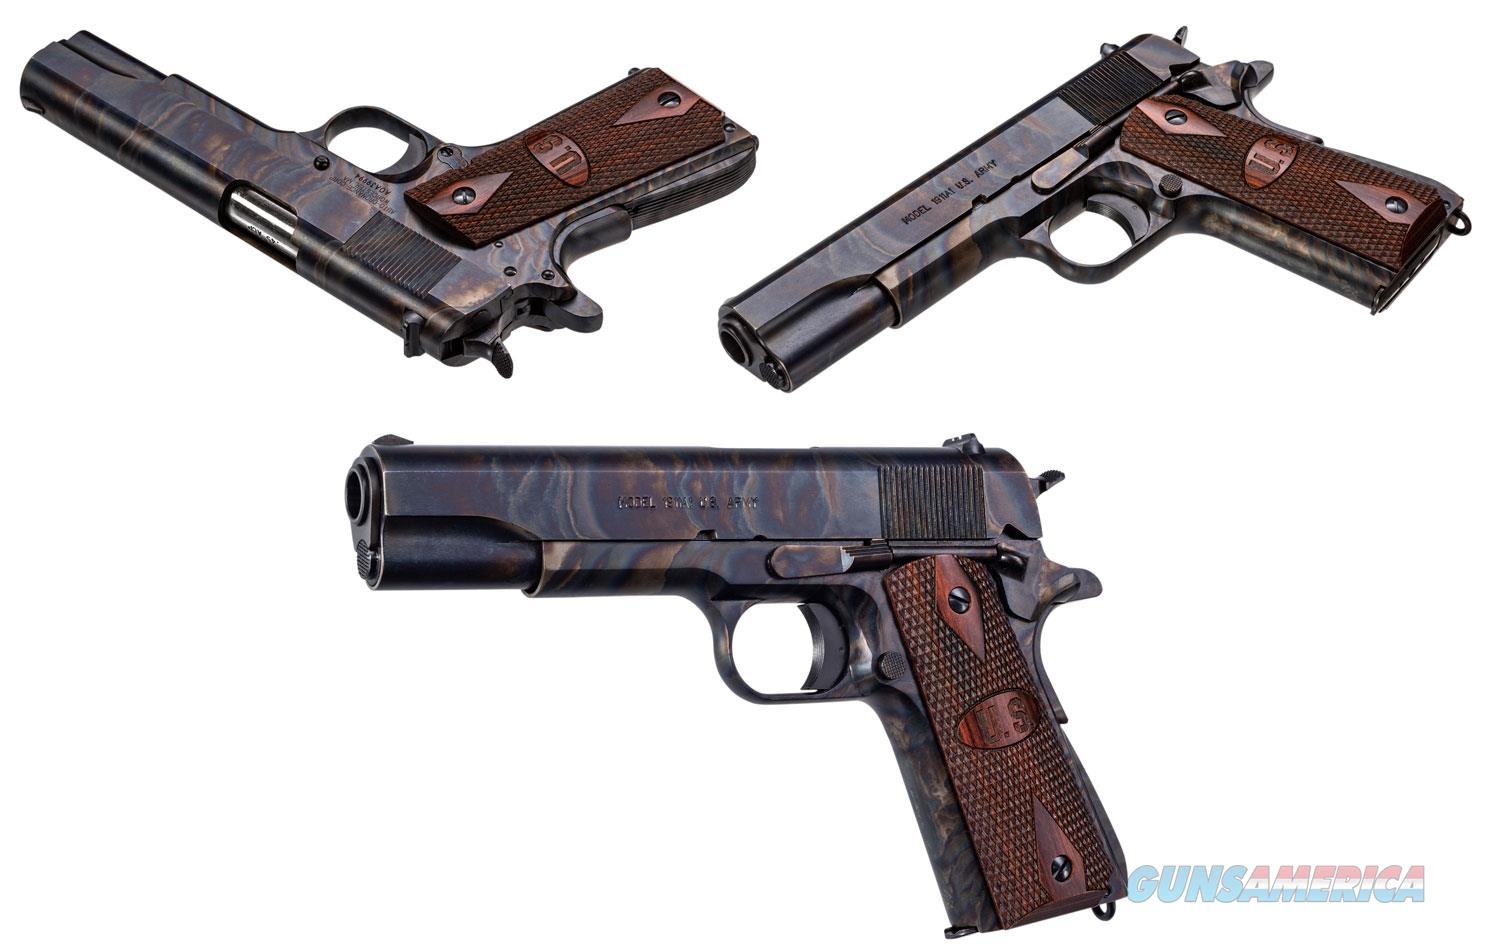 FREE 10 MONTH LAYAWAY Thompson 1911 Color Case Hardened 45ACP Checkered Wood with US logo  Guns > Pistols > Thompson Pistols